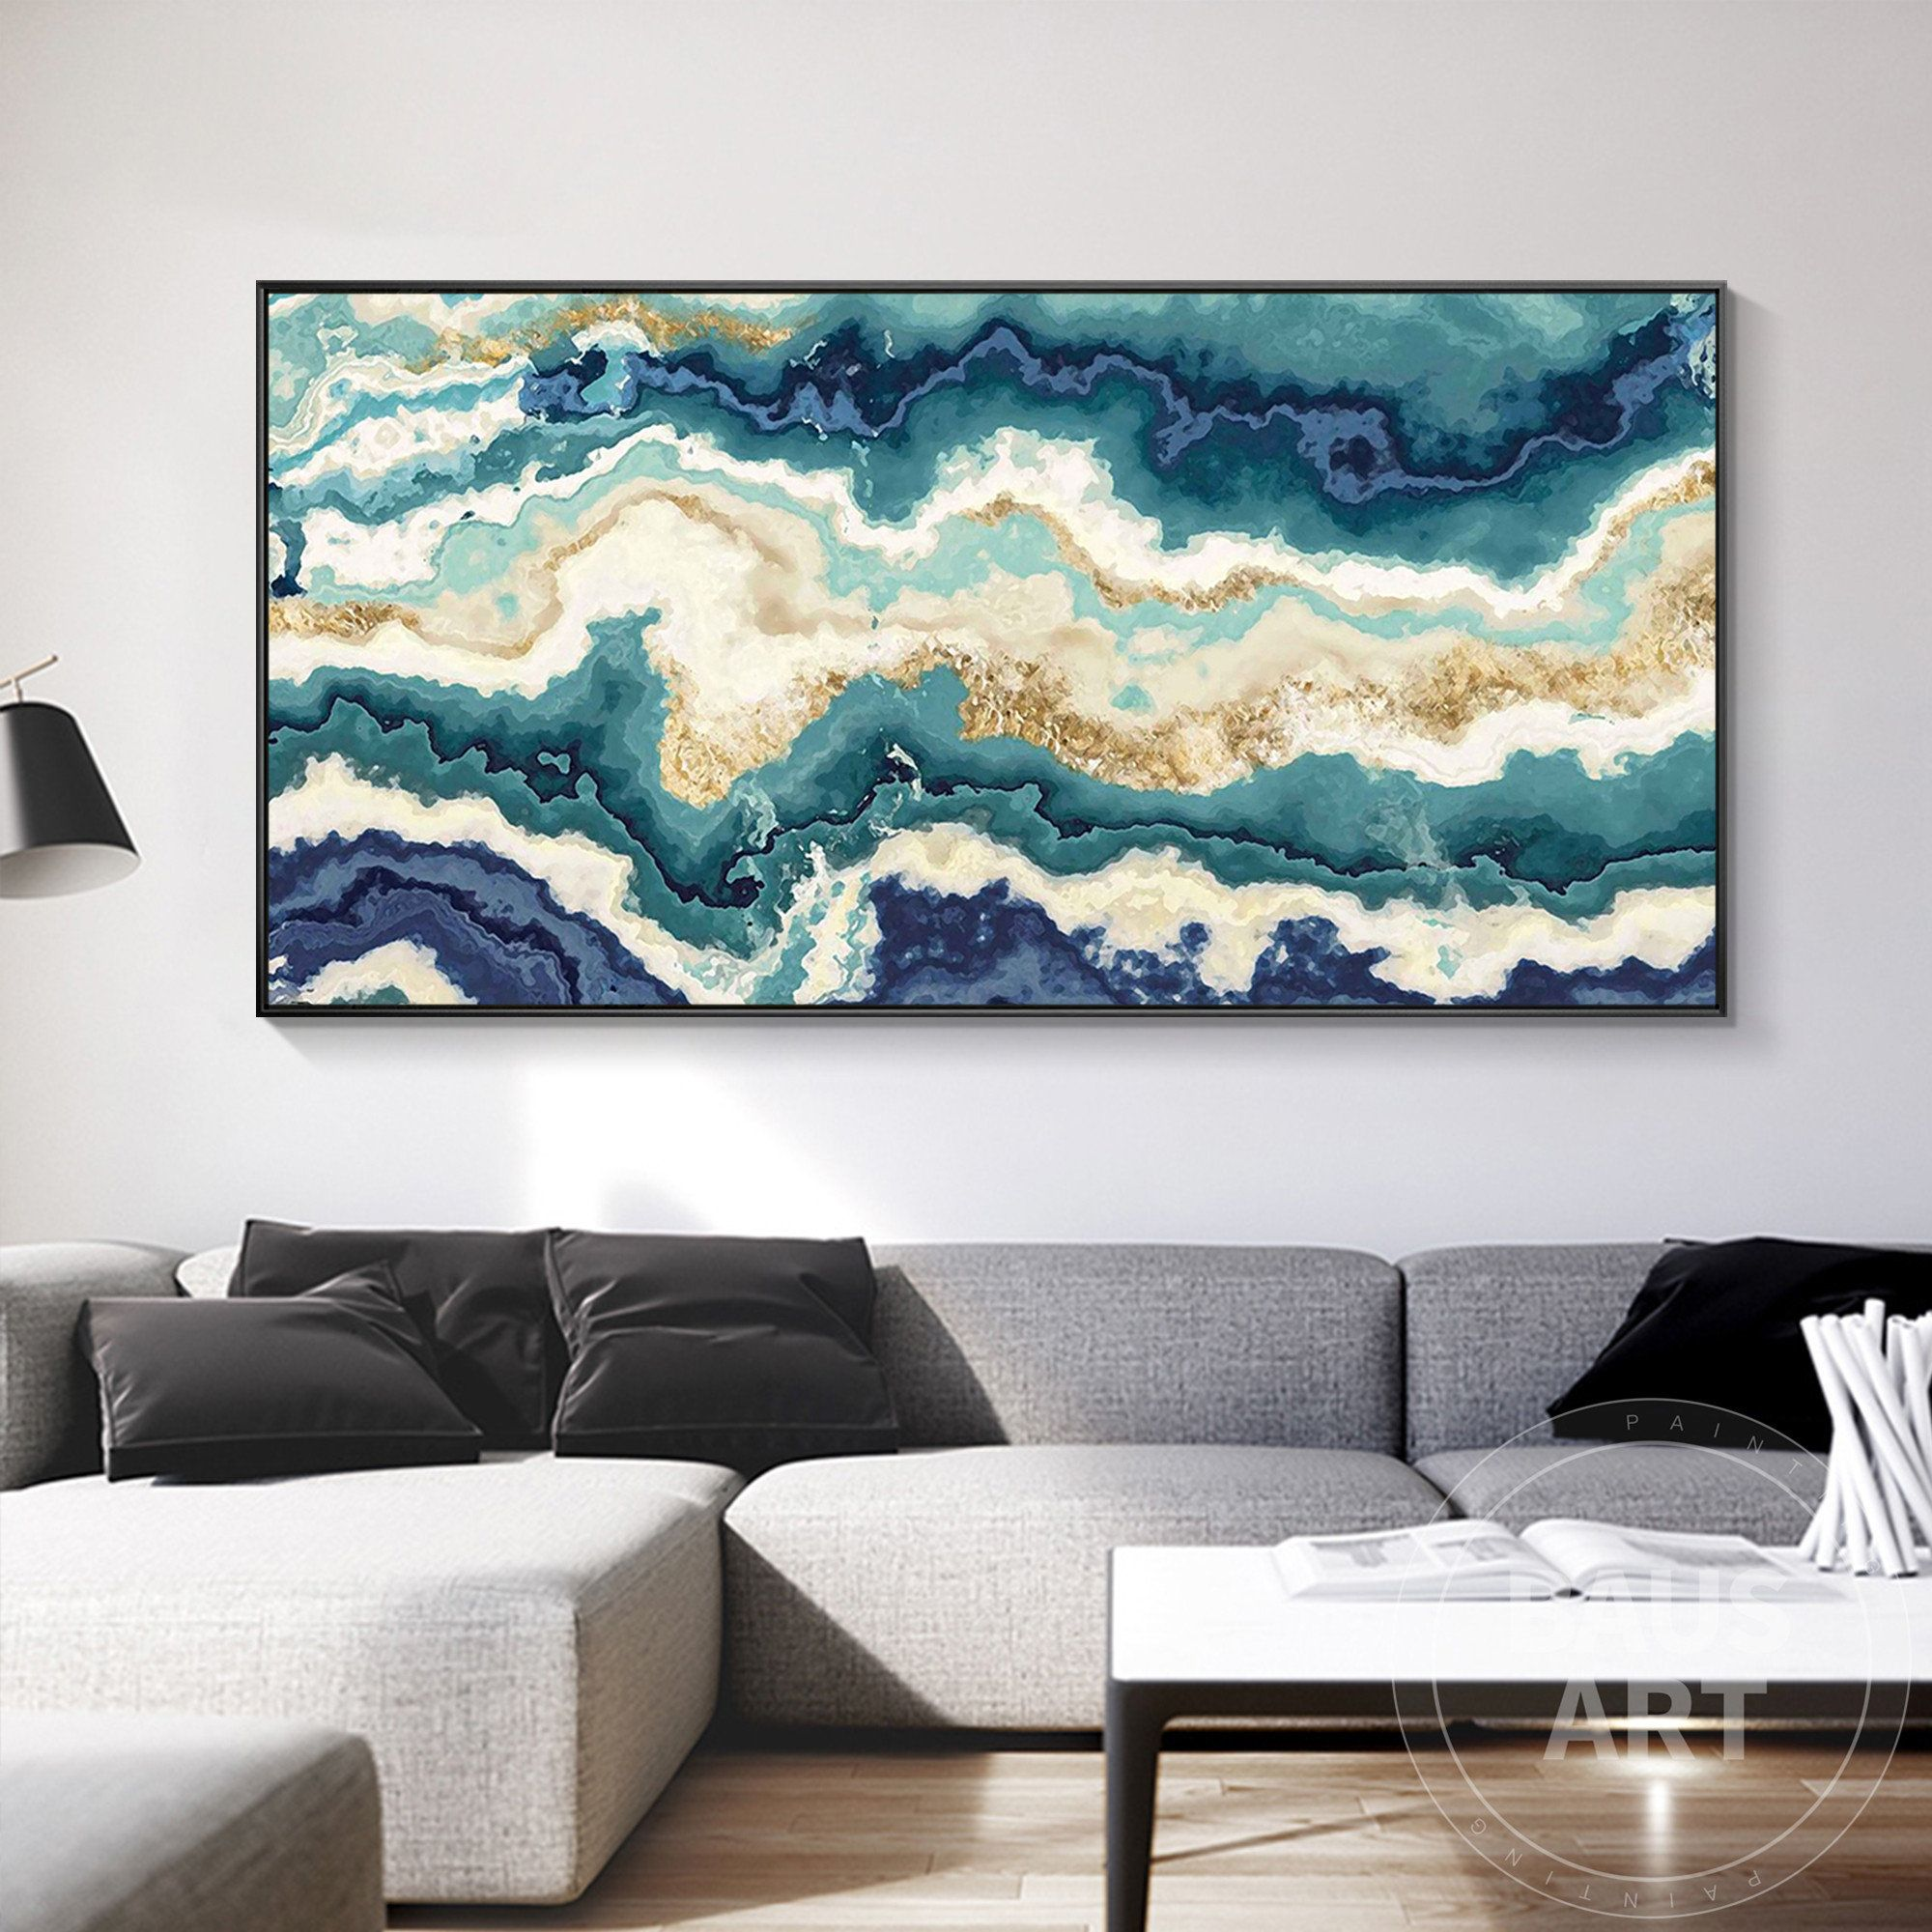 Abstract Agate Texture Print Green Texture Painting Green Agate Texture Framed Wall Decor Art Large Modern Wall Art Print Ready To Hang Large Modern Wall Art Texture Painting Framed Prints Wall